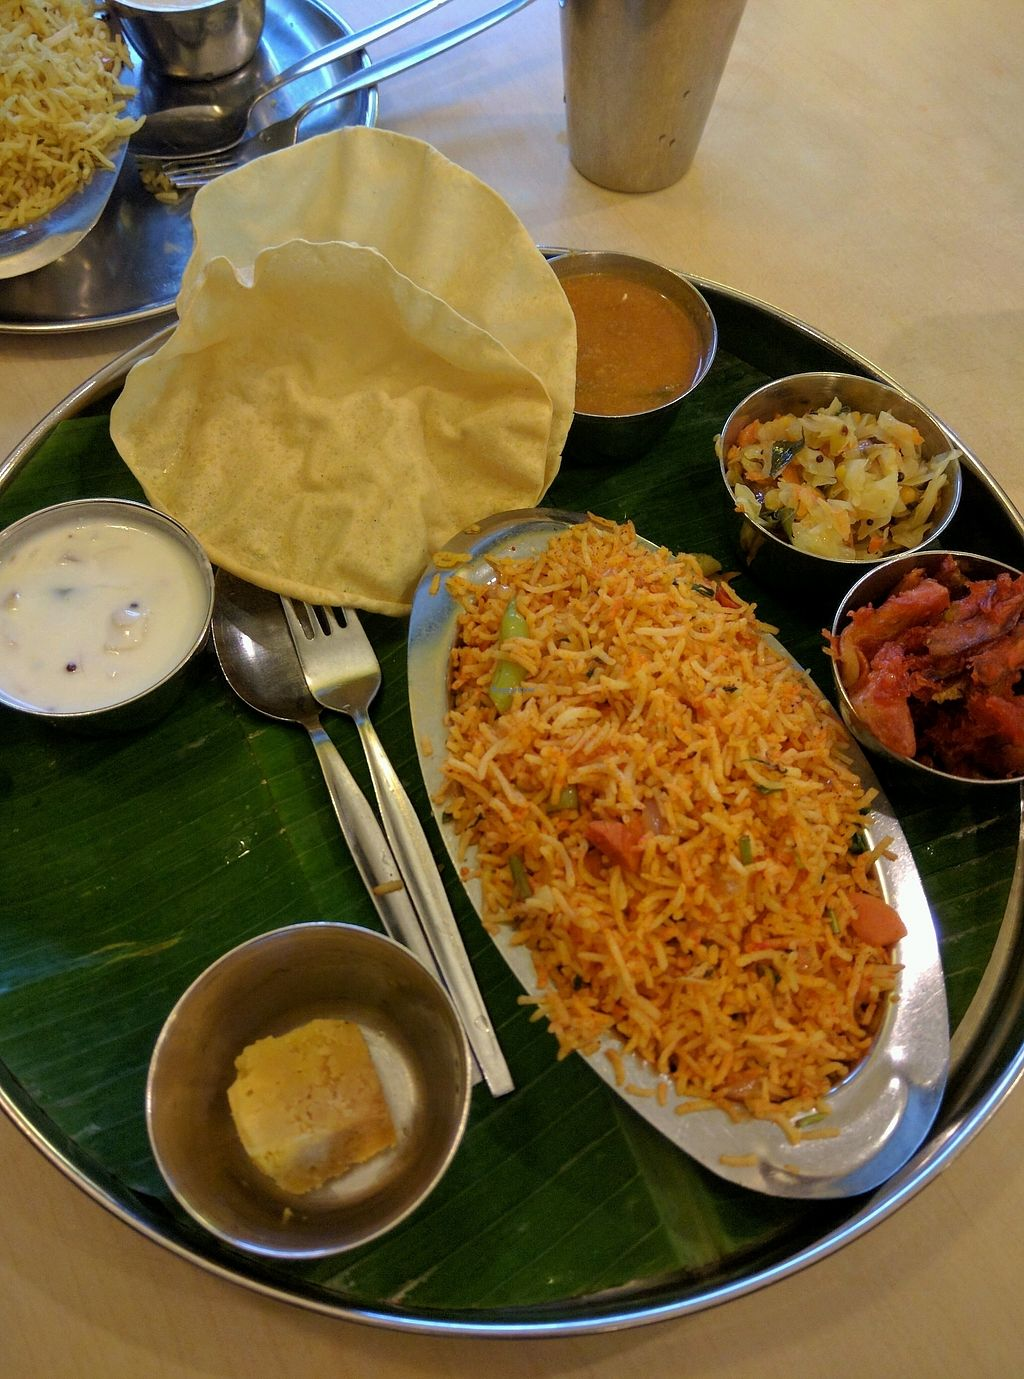 """Photo of Woodlands  by <a href=""""/members/profile/Summer_Tan"""">Summer_Tan</a> <br/>Briyani Set - RM10.00 Good portion of flavourful briyani rice and side dishes <br/> January 29, 2018  - <a href='/contact/abuse/image/141/352511'>Report</a>"""